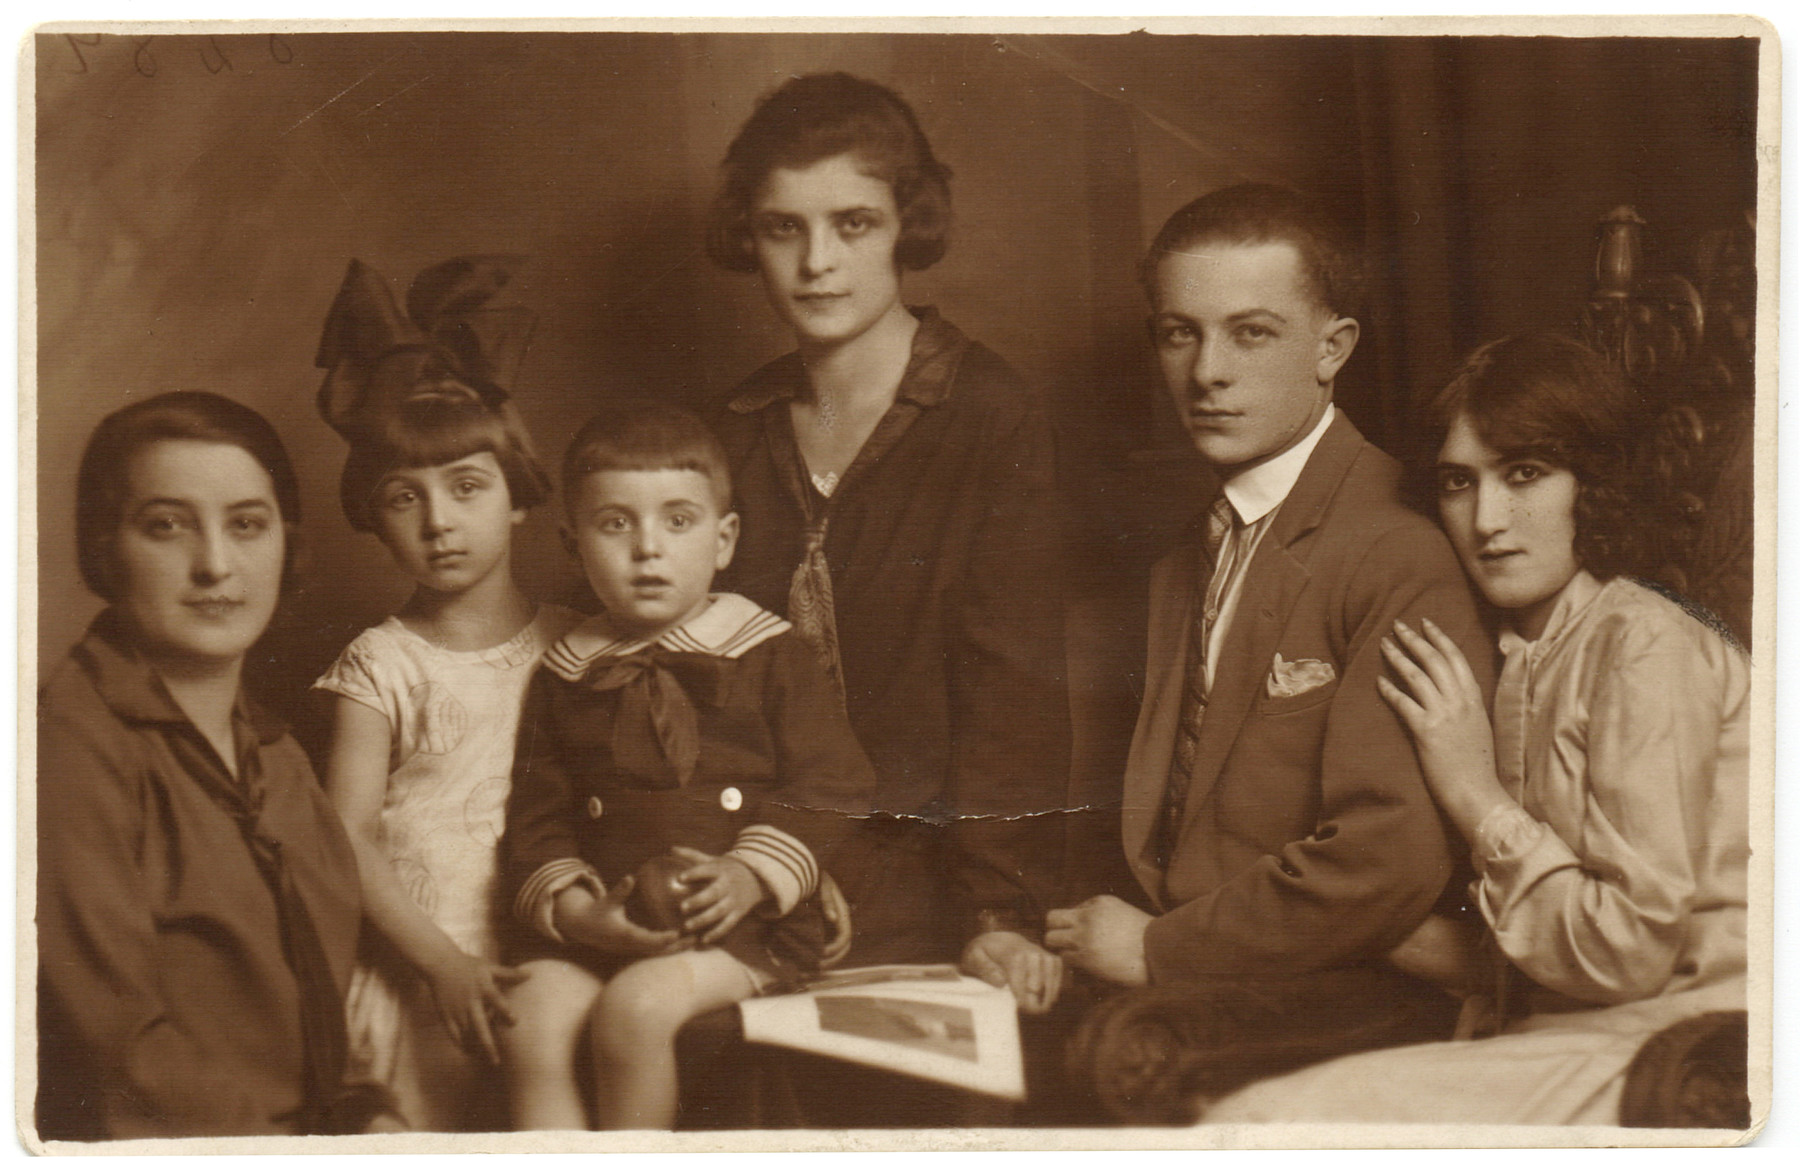 Studio portrait of a prewar Jewish family in Lodz, Poland.  Pictured on the far right is Helena Bilander Kellner and her husband.